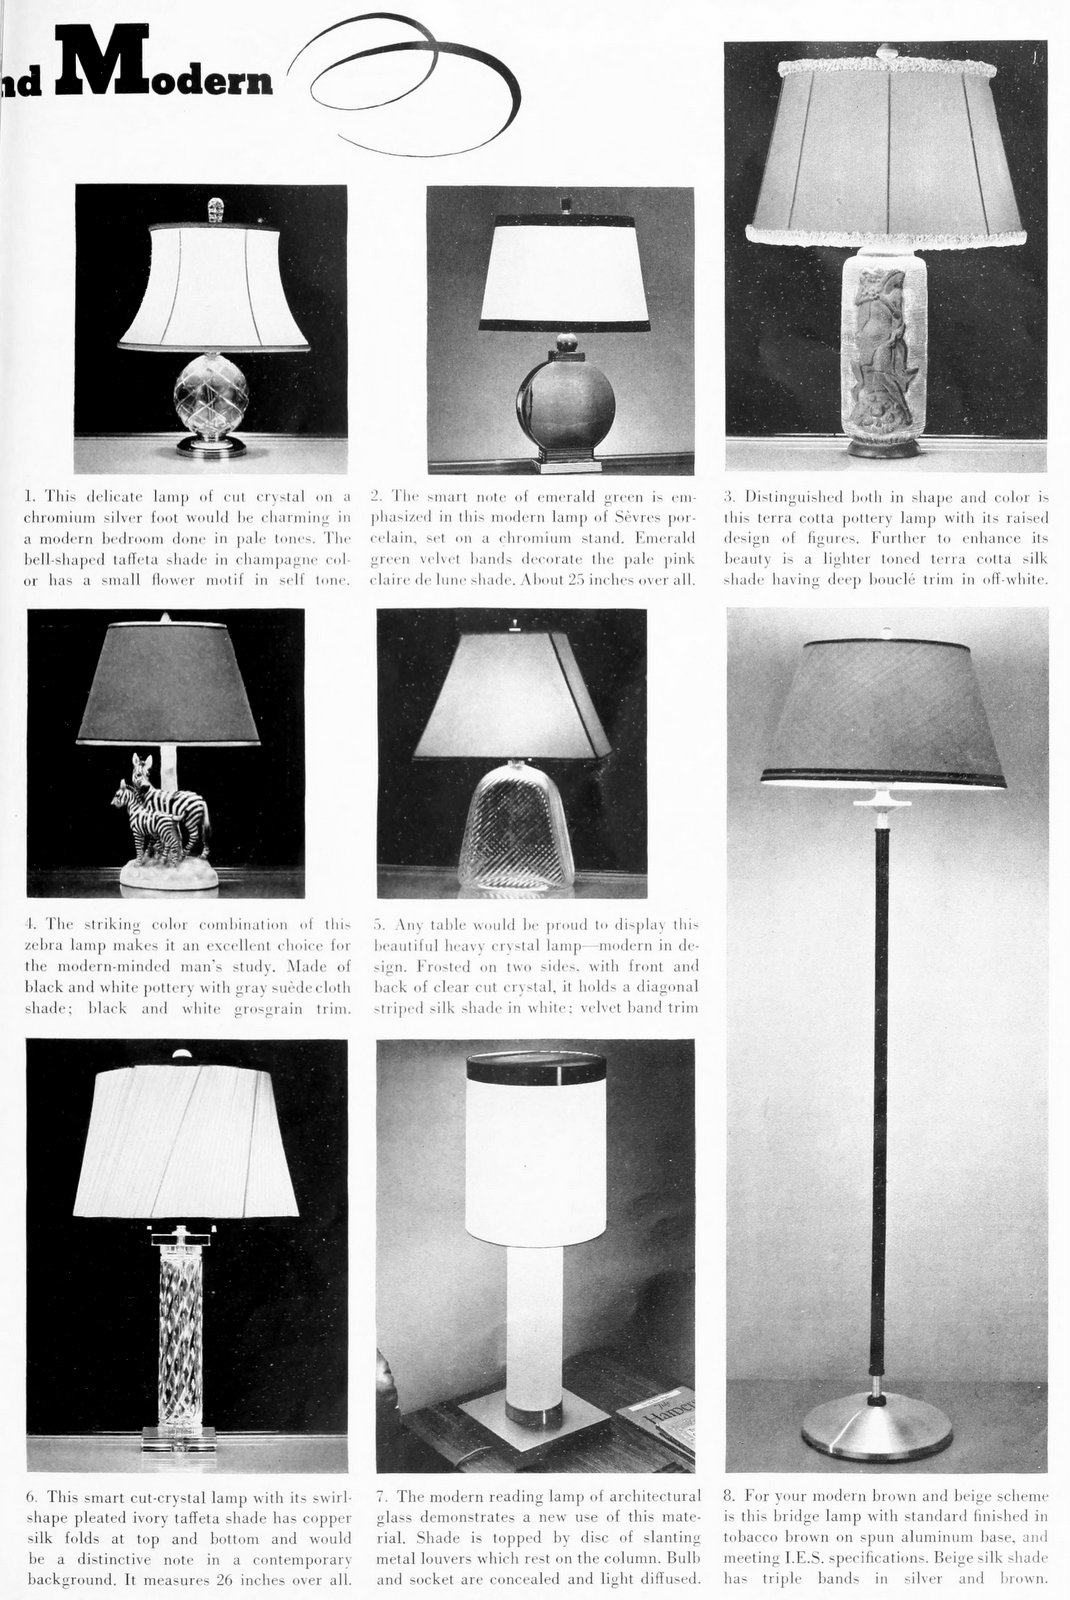 Beautiful vintage 1930s modern lamp styles from 1937